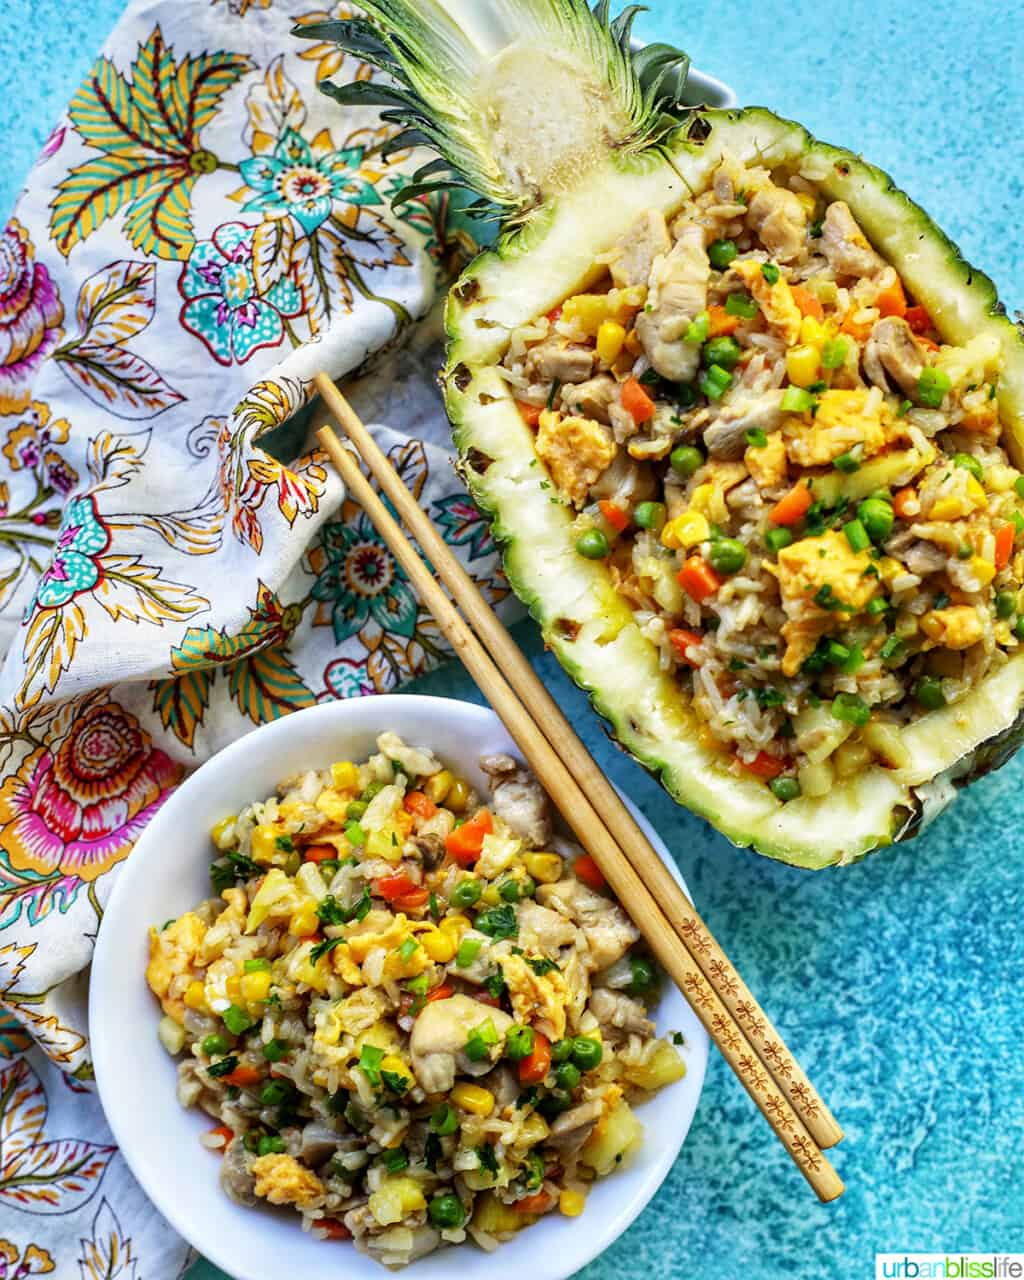 pineapple fried rice in hollowed out pineapple boat with bowl of fried rice